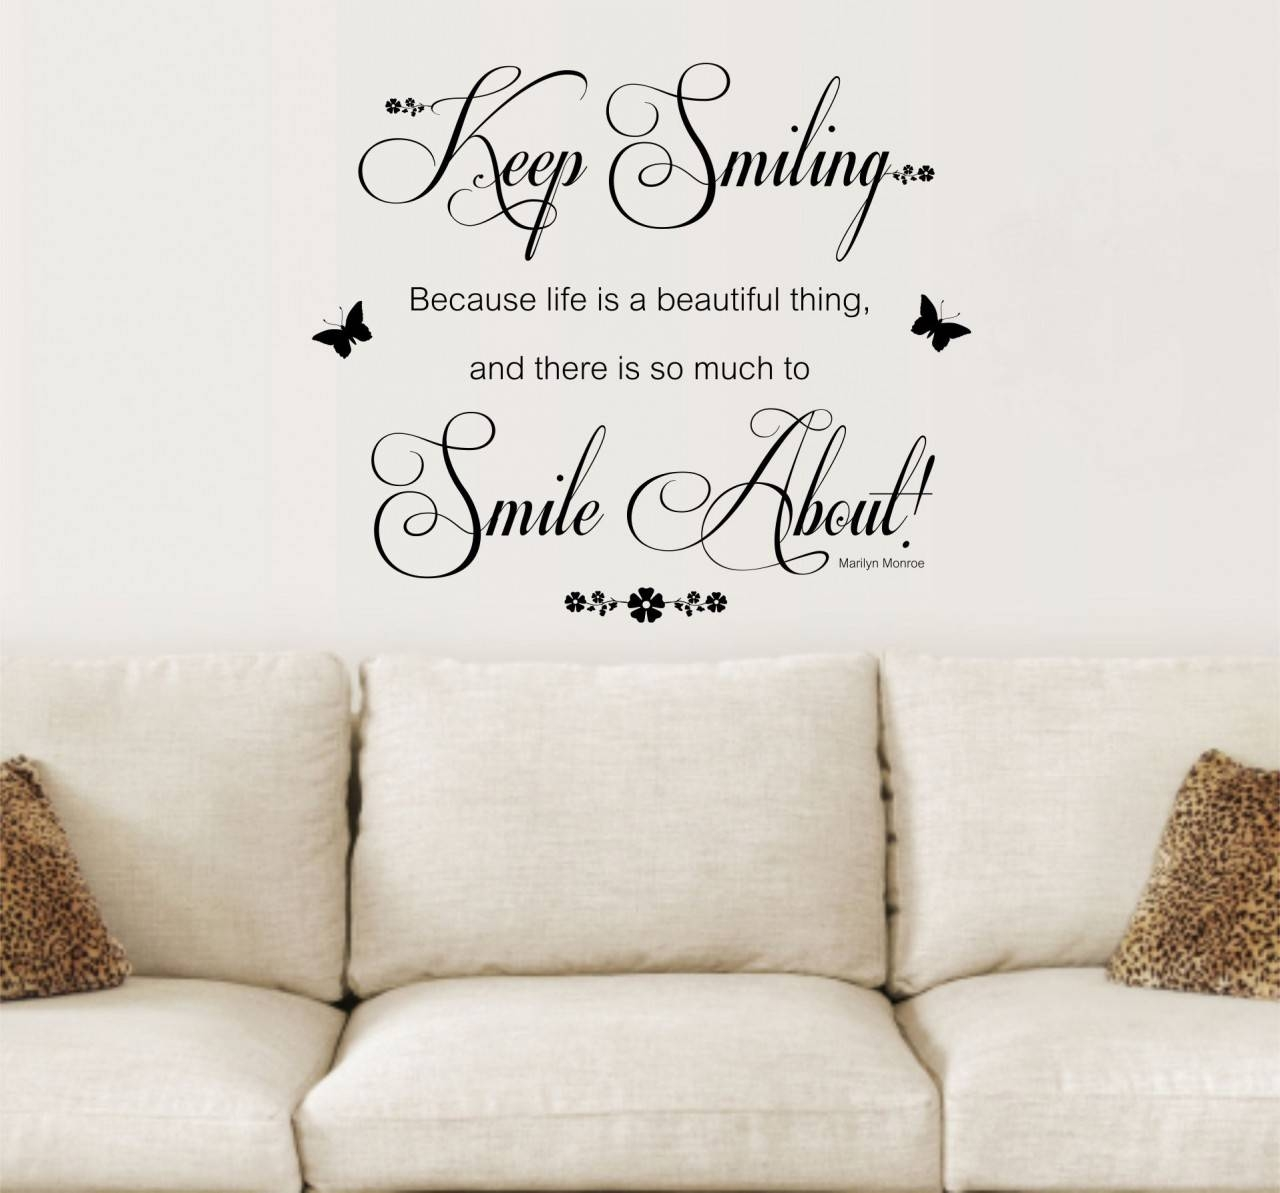 Wall Art Designs: Inspirational Wall Art Motivational Quotes Wall Inside Most Popular Inspirational Sayings Wall Art (View 24 of 30)